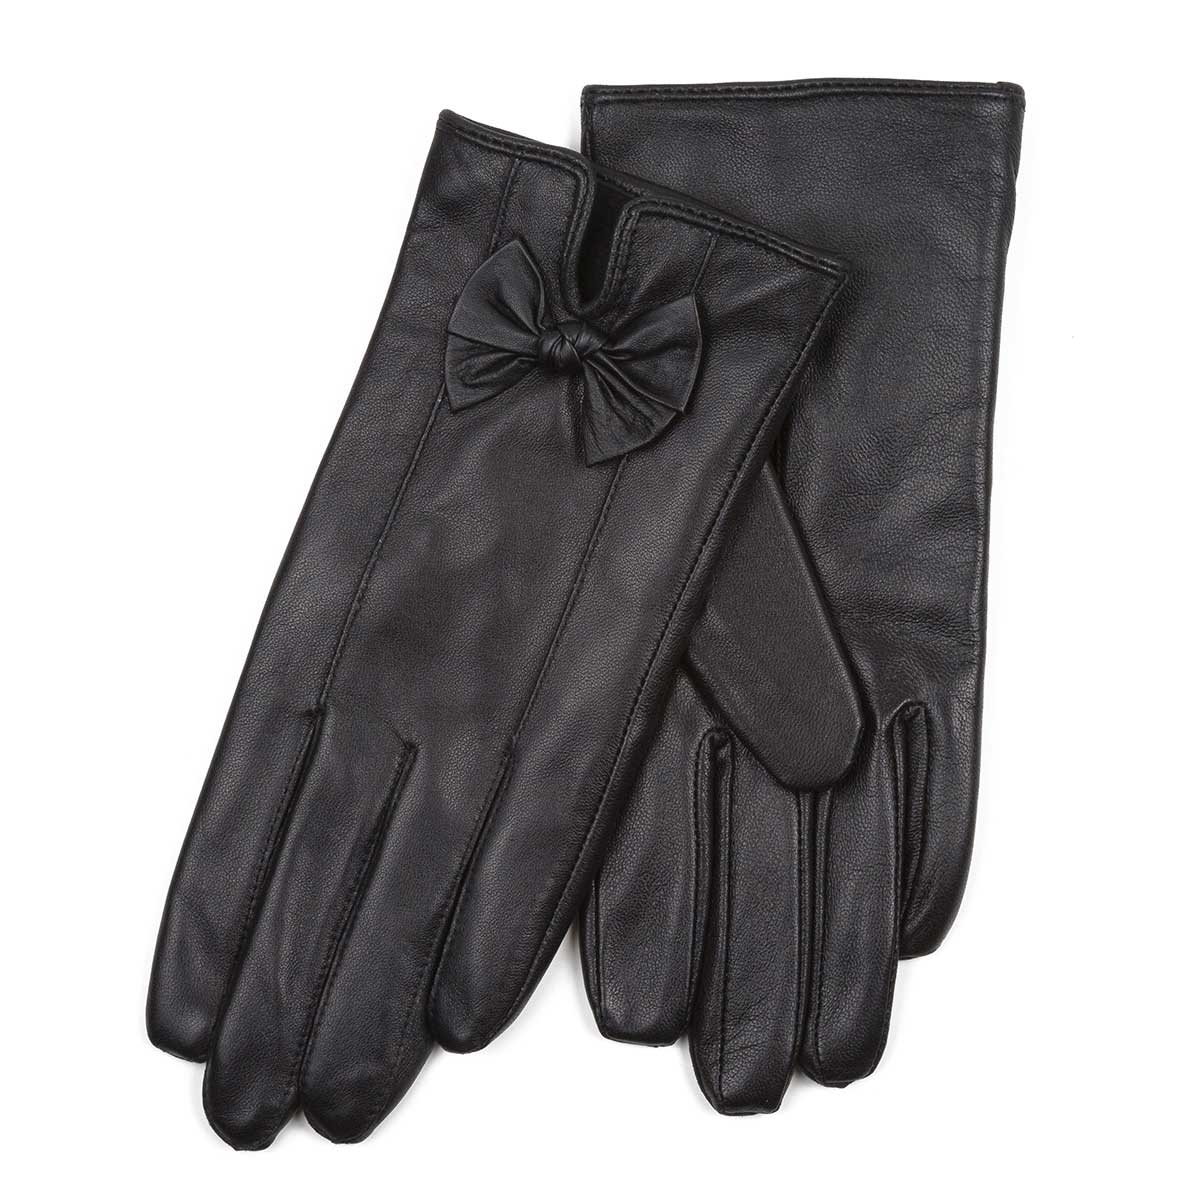 Ladies leather gloves isotoner - Isotoner Ladies Leather Glove With Bows Black